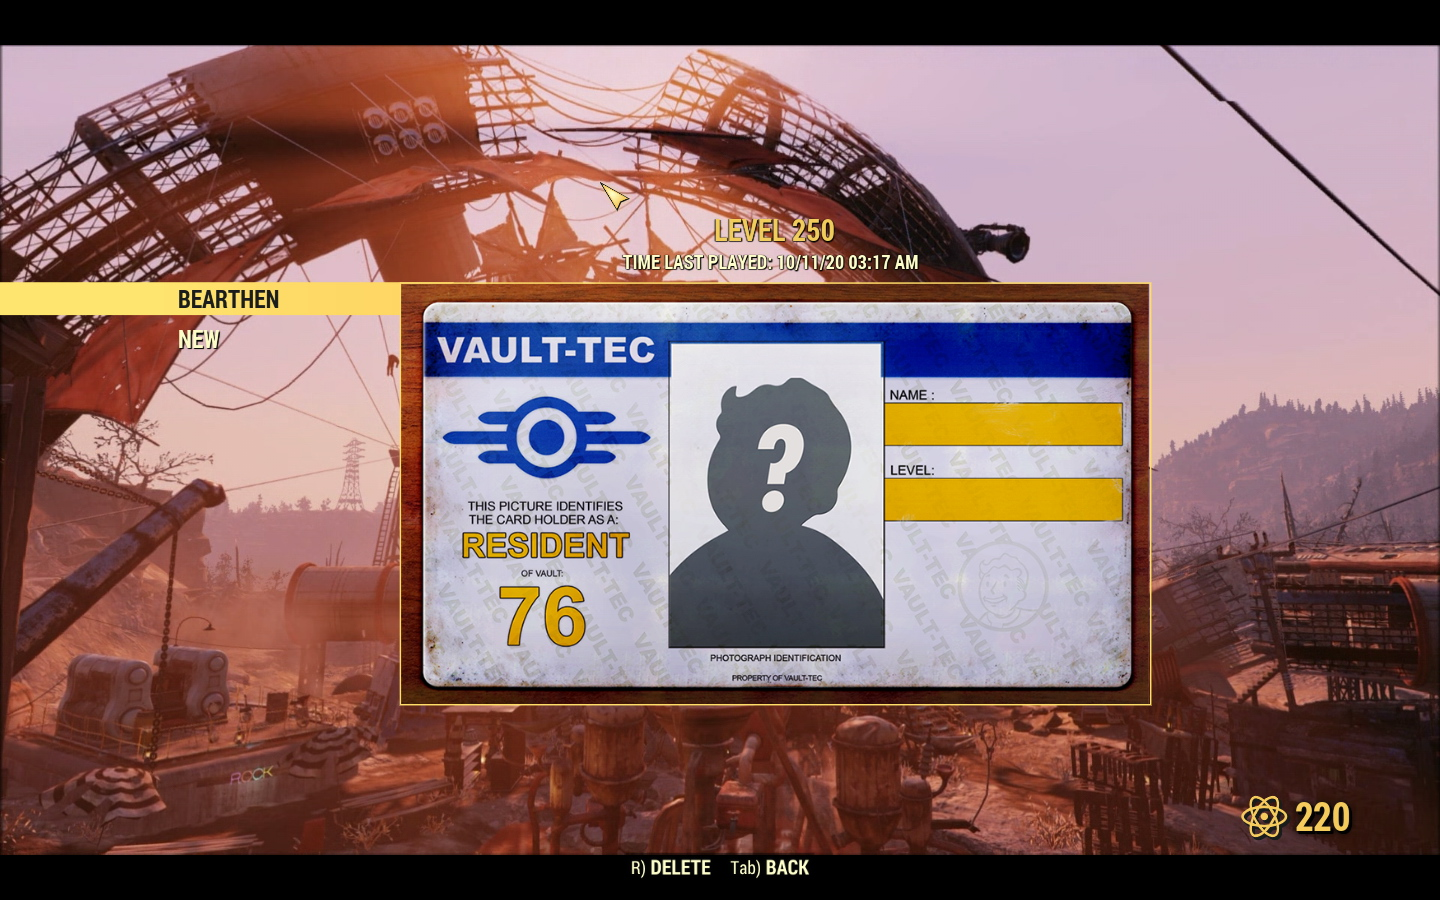 Ultimate Personal Fallout 76 account, Lvl 250, AA/Bloodied/Explosive guns, Unyielding Forest Scout S